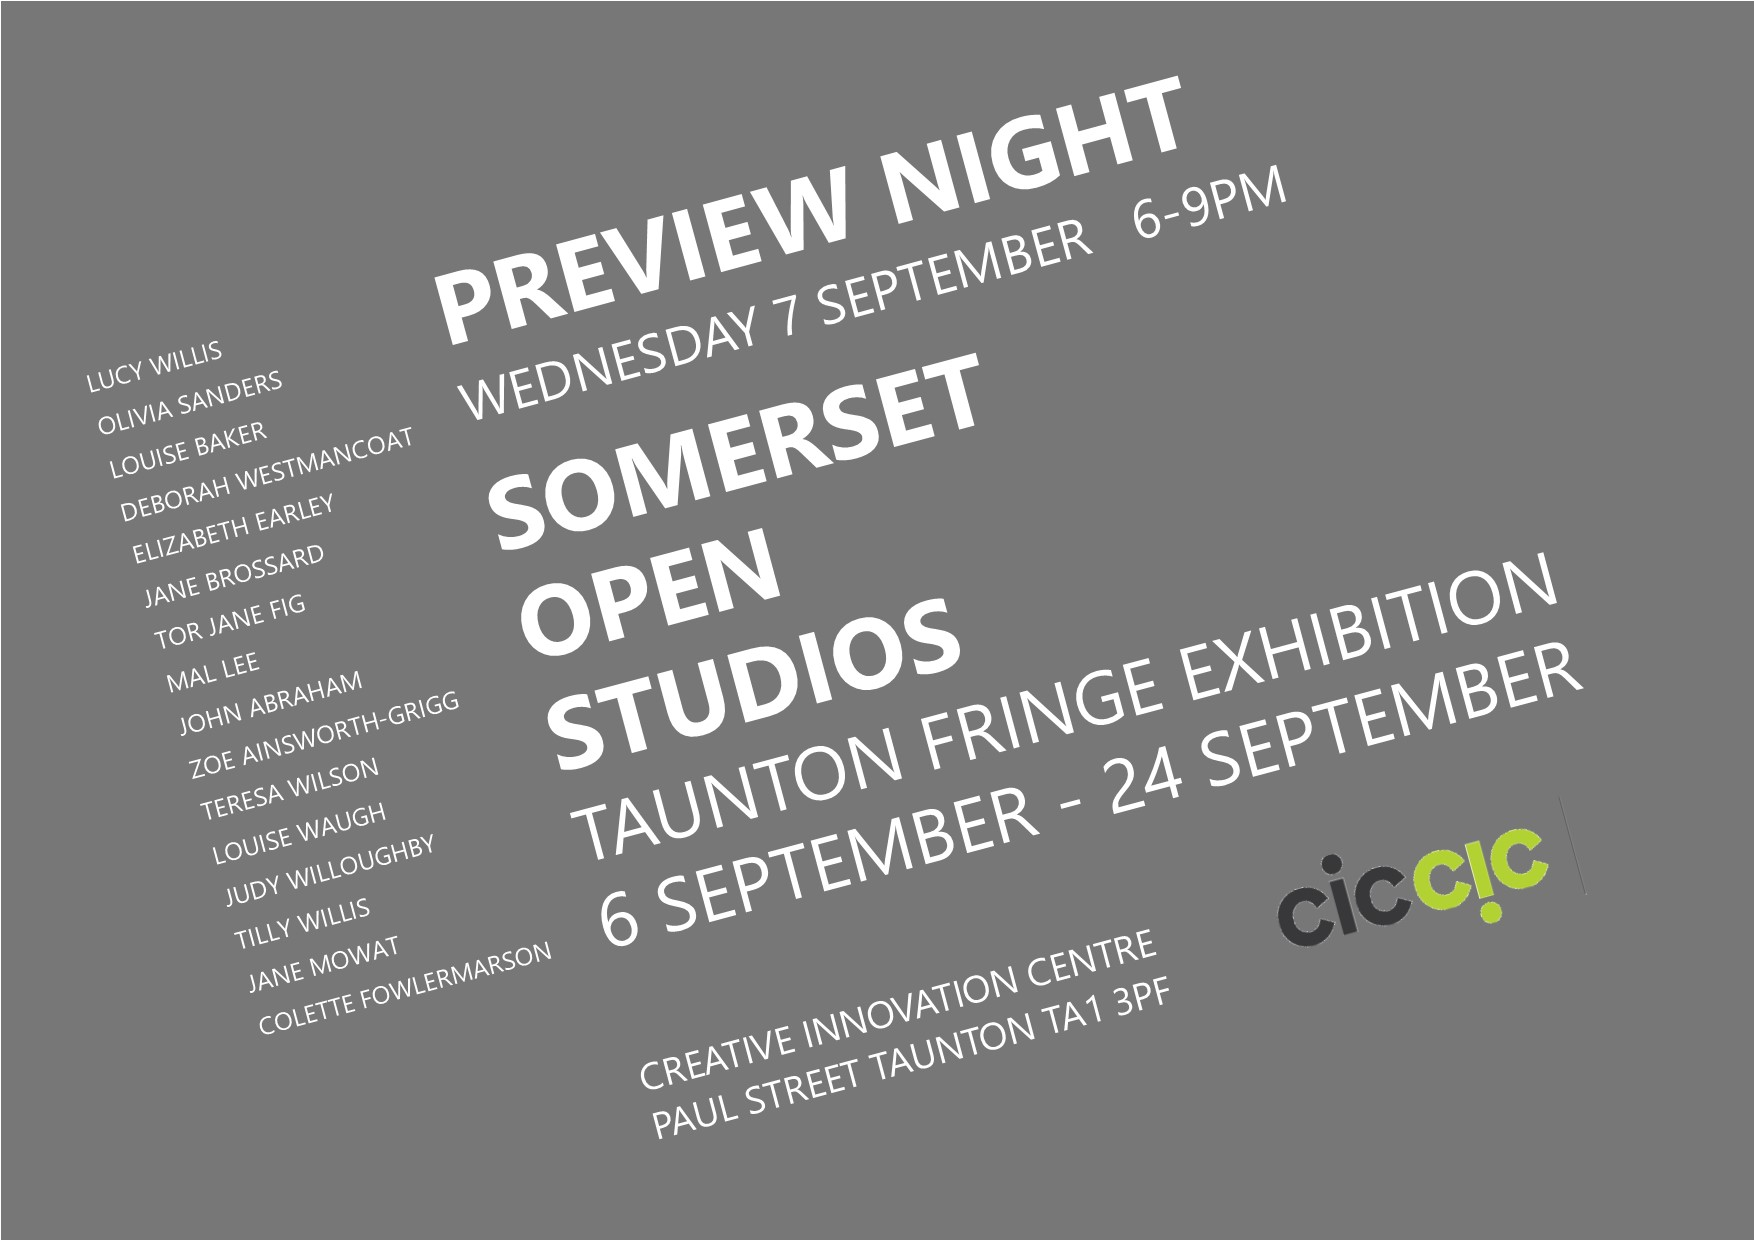 SAW Taunton Fringe Exhibition PV INVITE